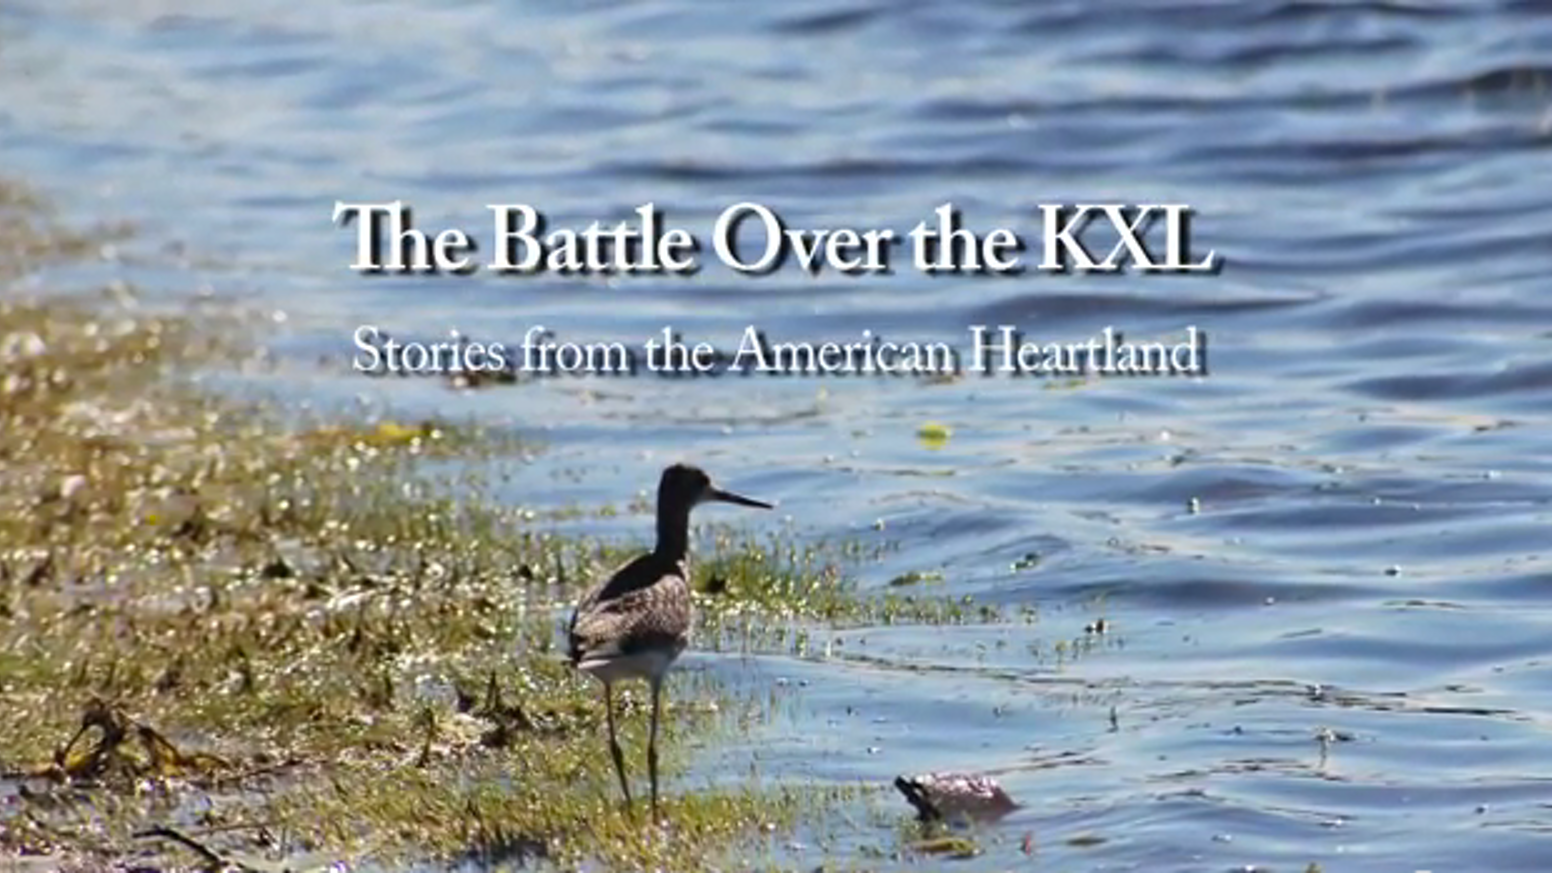 In January 2014, we are traveling to frontline communities to film their resistances against the Keystone XL pipeline.